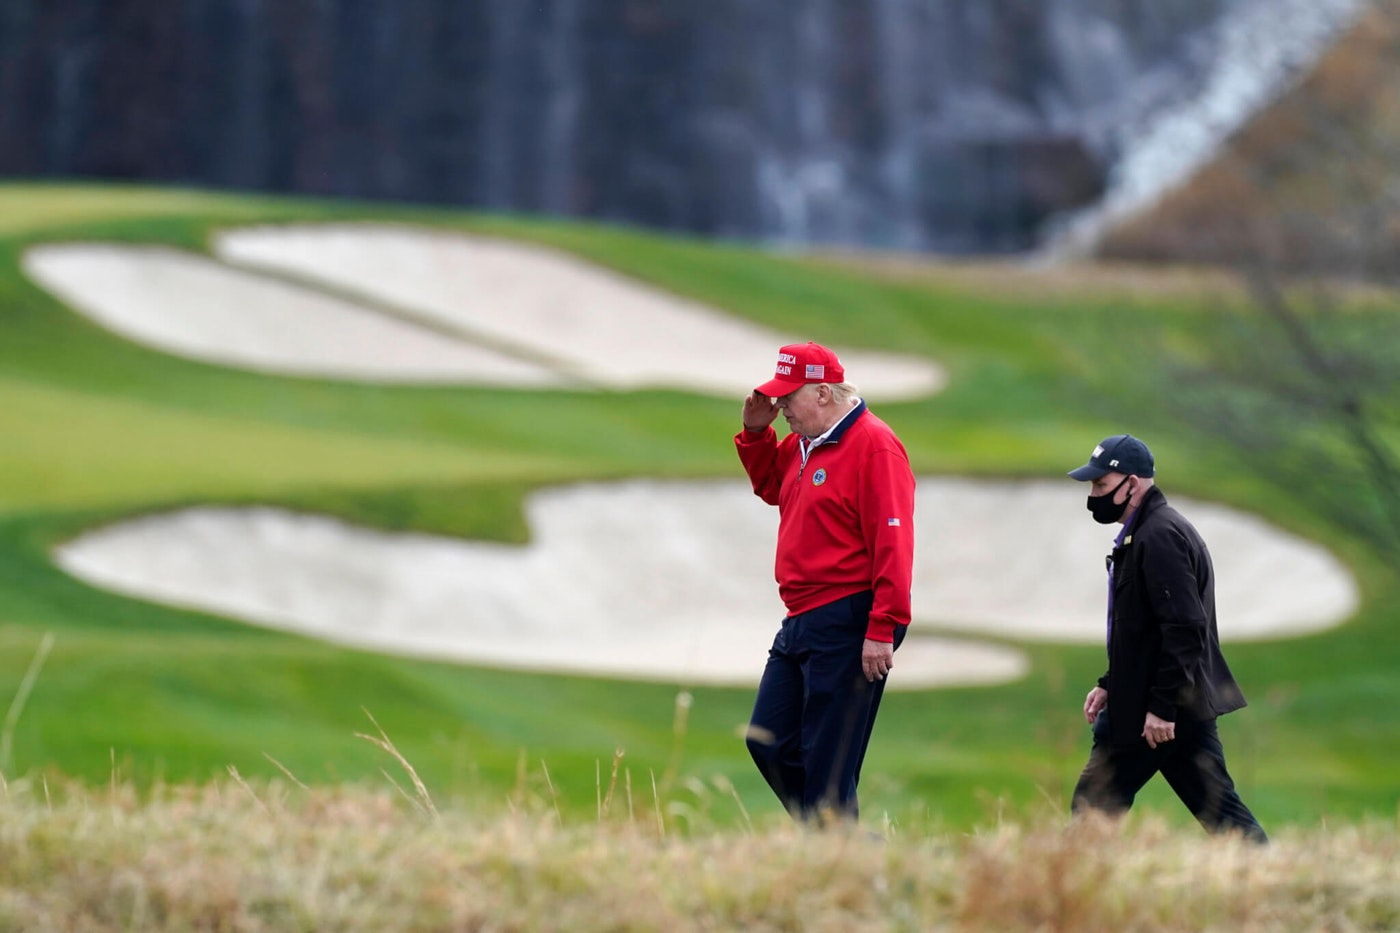 President Donald Trump salutes as he walks to board Marine One after playing golf at Trump National Golf Club, Friday, Nov. 27, 2020, in Sterling, Va. (AP Photo/Alex Brandon)